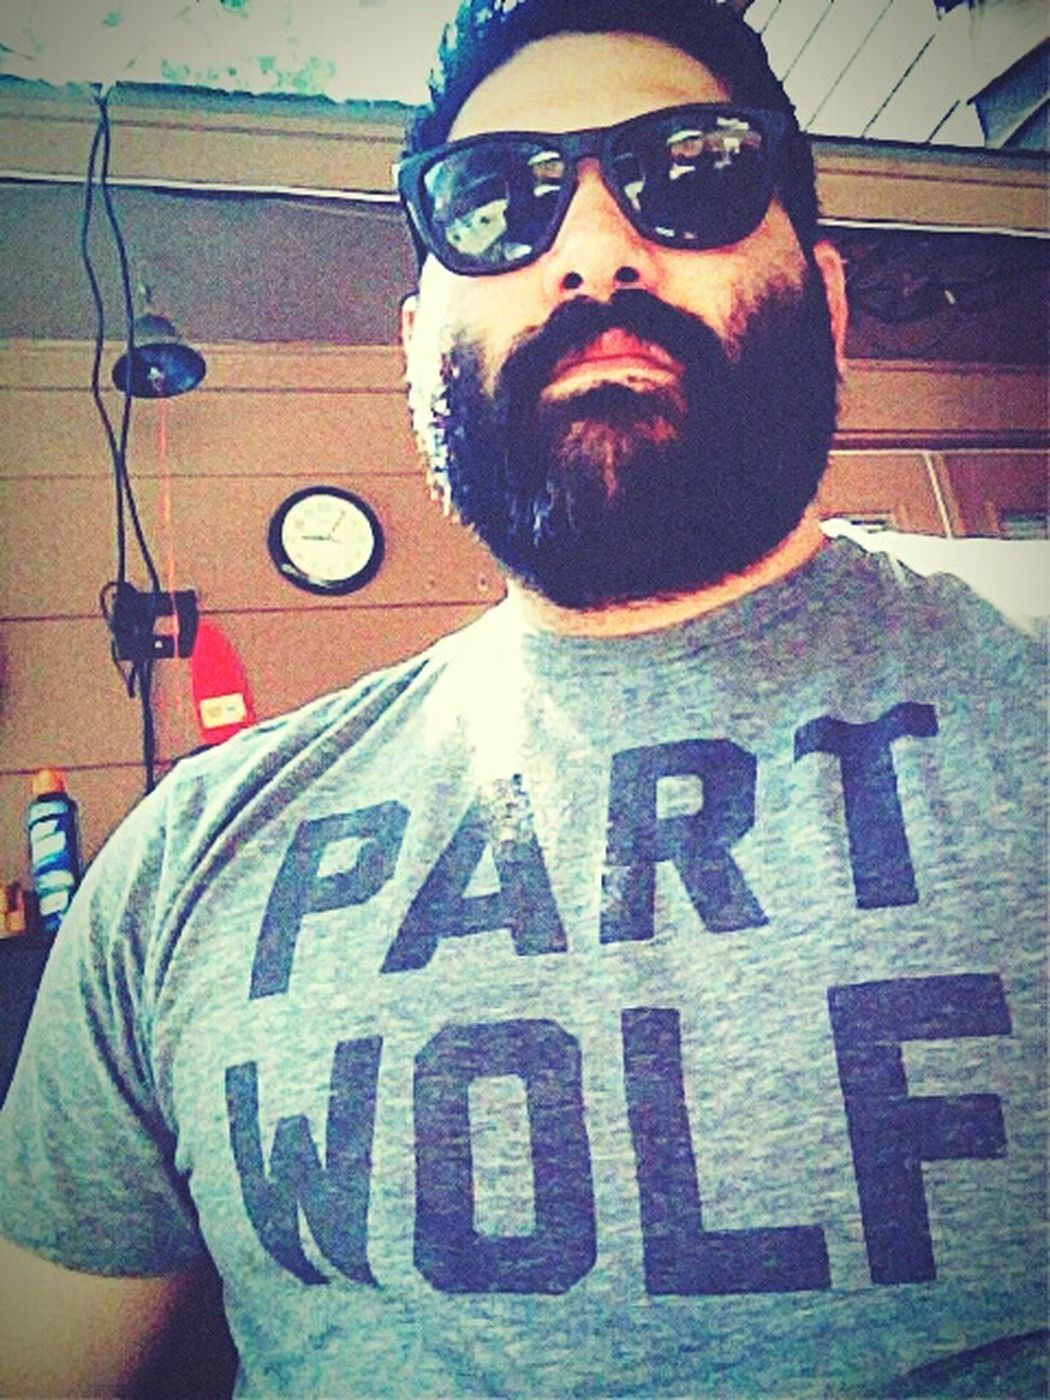 Selfportrait Selfie Beard Beardlife Beardnation Beardpower Partwolf Chiver Kcco @houstonchivers Chivenation